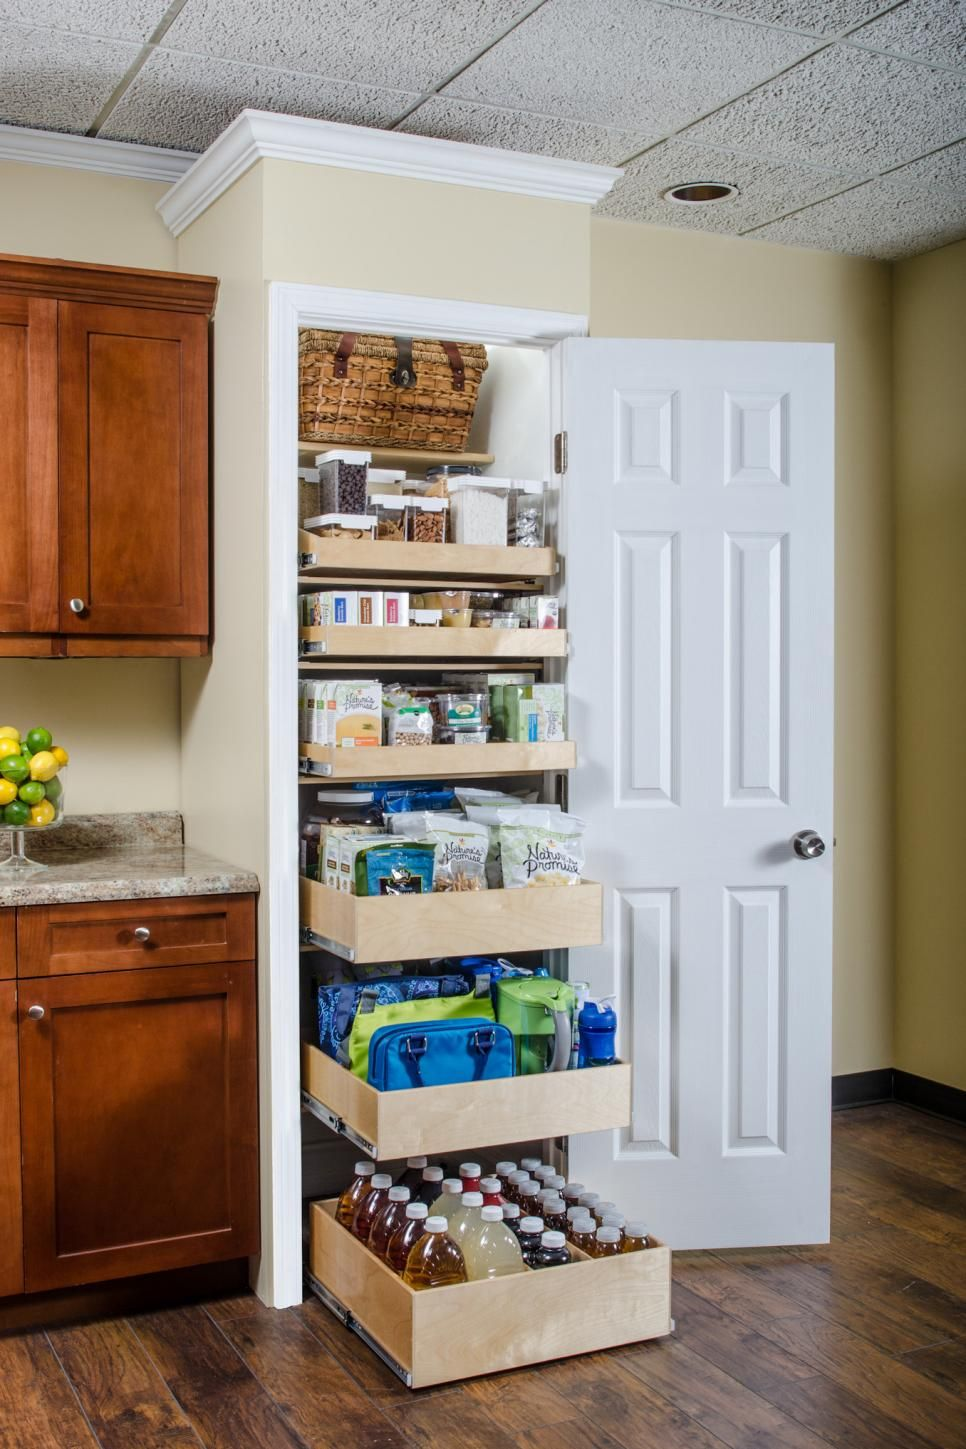 20 Best Pantry Organizers Pantry Design Pantry Organizers Diy Kitchen Storage